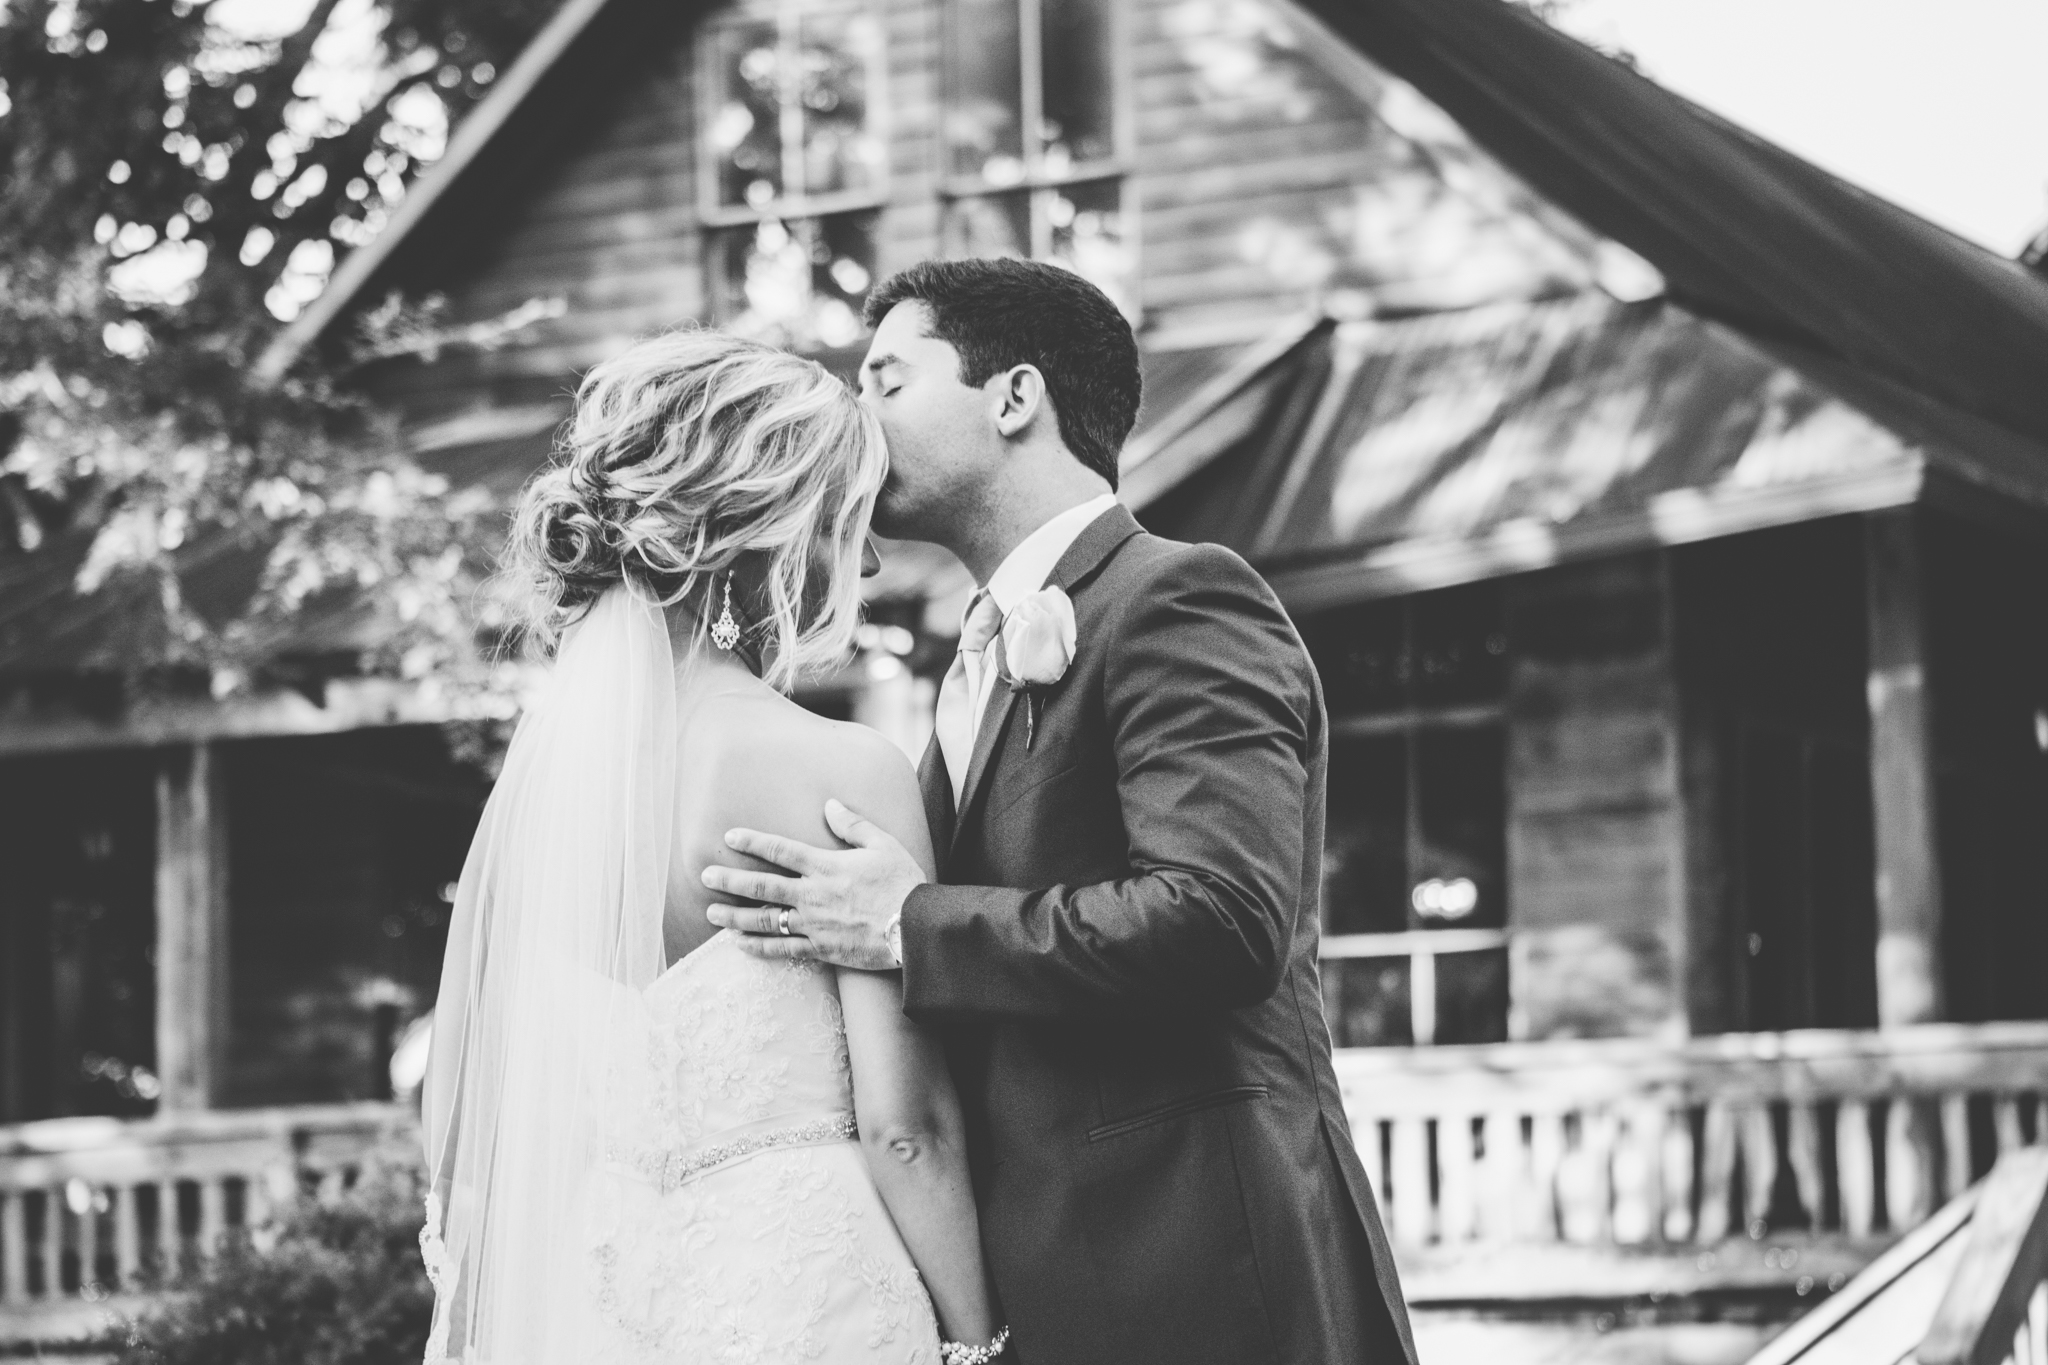 Josh + Alora | Classic Denham Springs Wedding. Photos by Christi Childs with The Picture People LA photography Baton Rouge, Louisiana